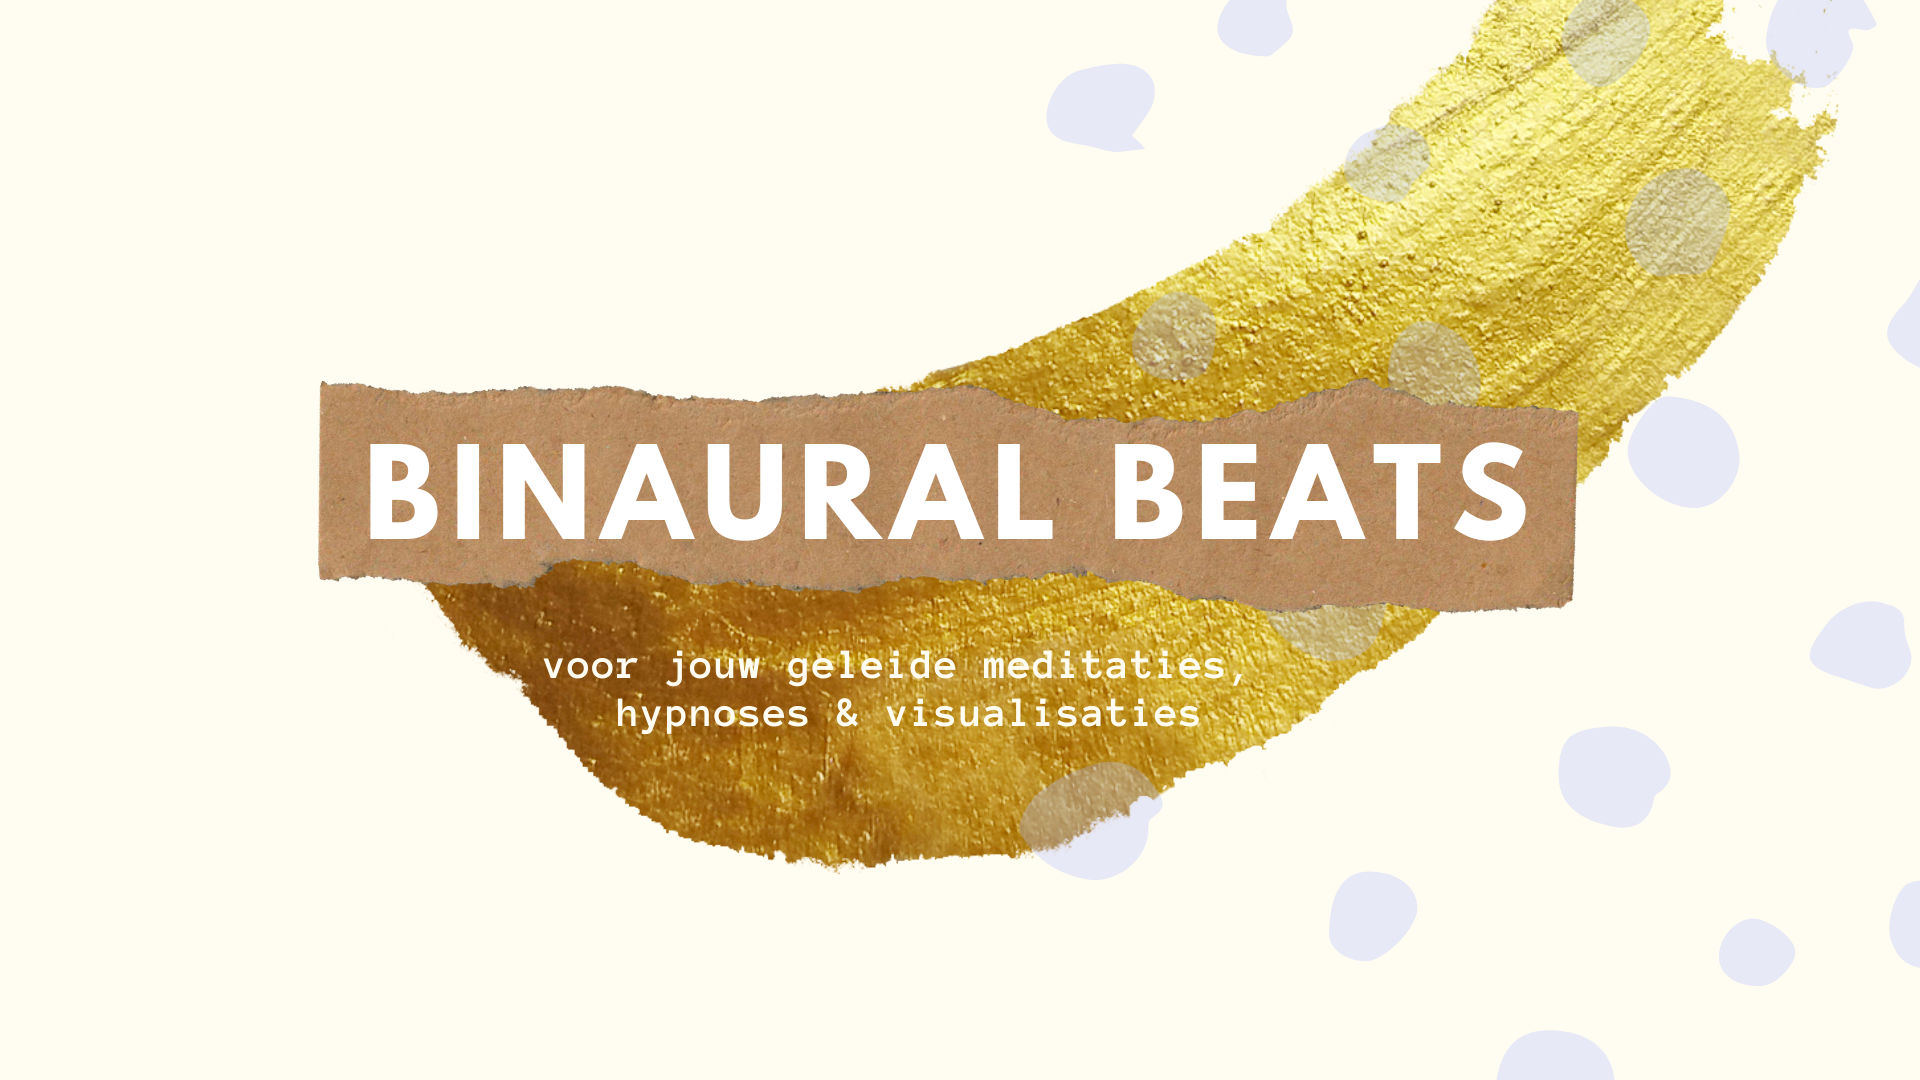 binaural beats voor meditaties visualisaties en hypnoses